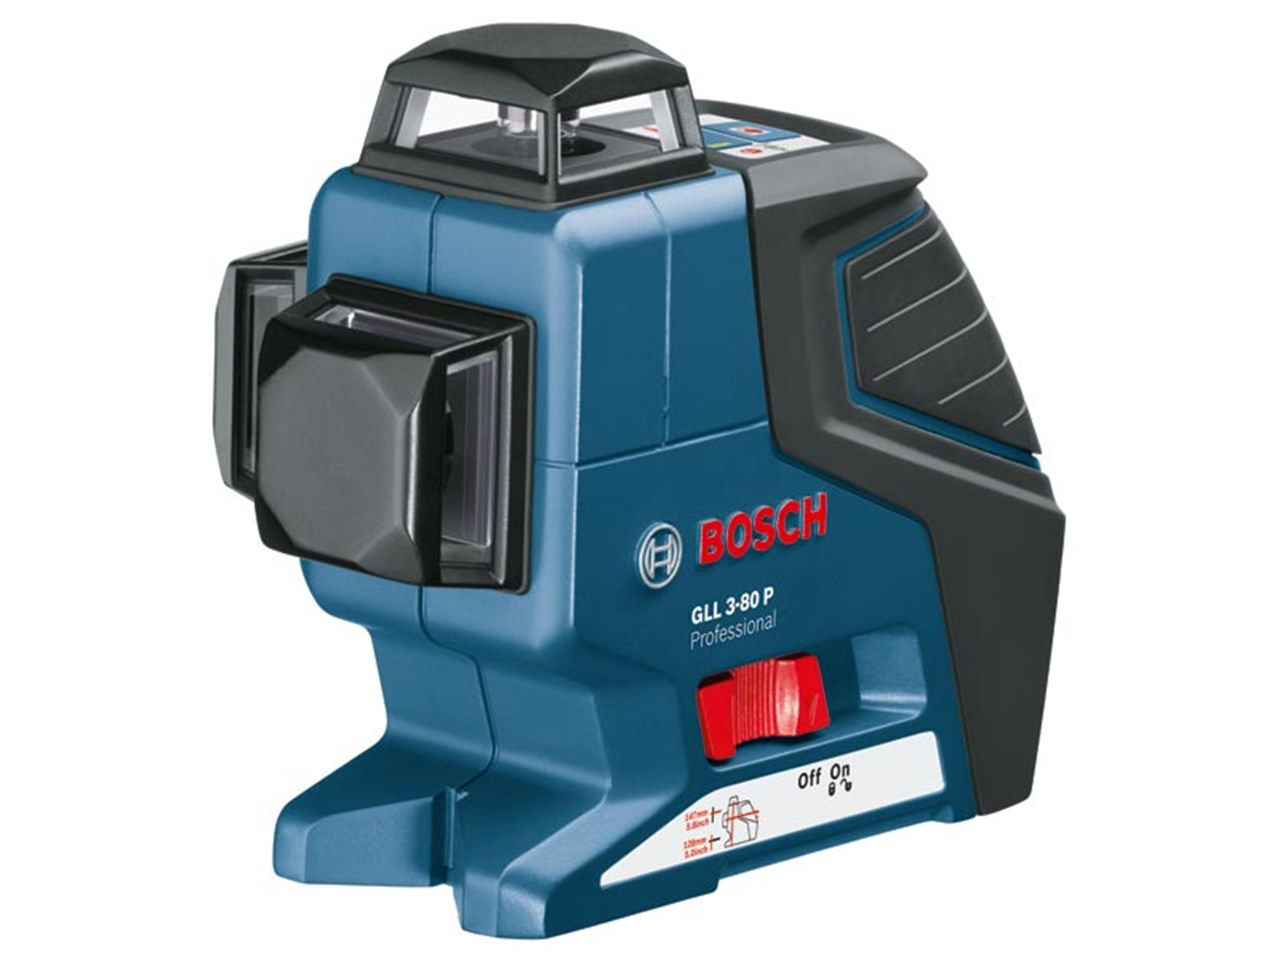 Bosch gll 3 80p professional cross line laser for Trepied pour laser bosch